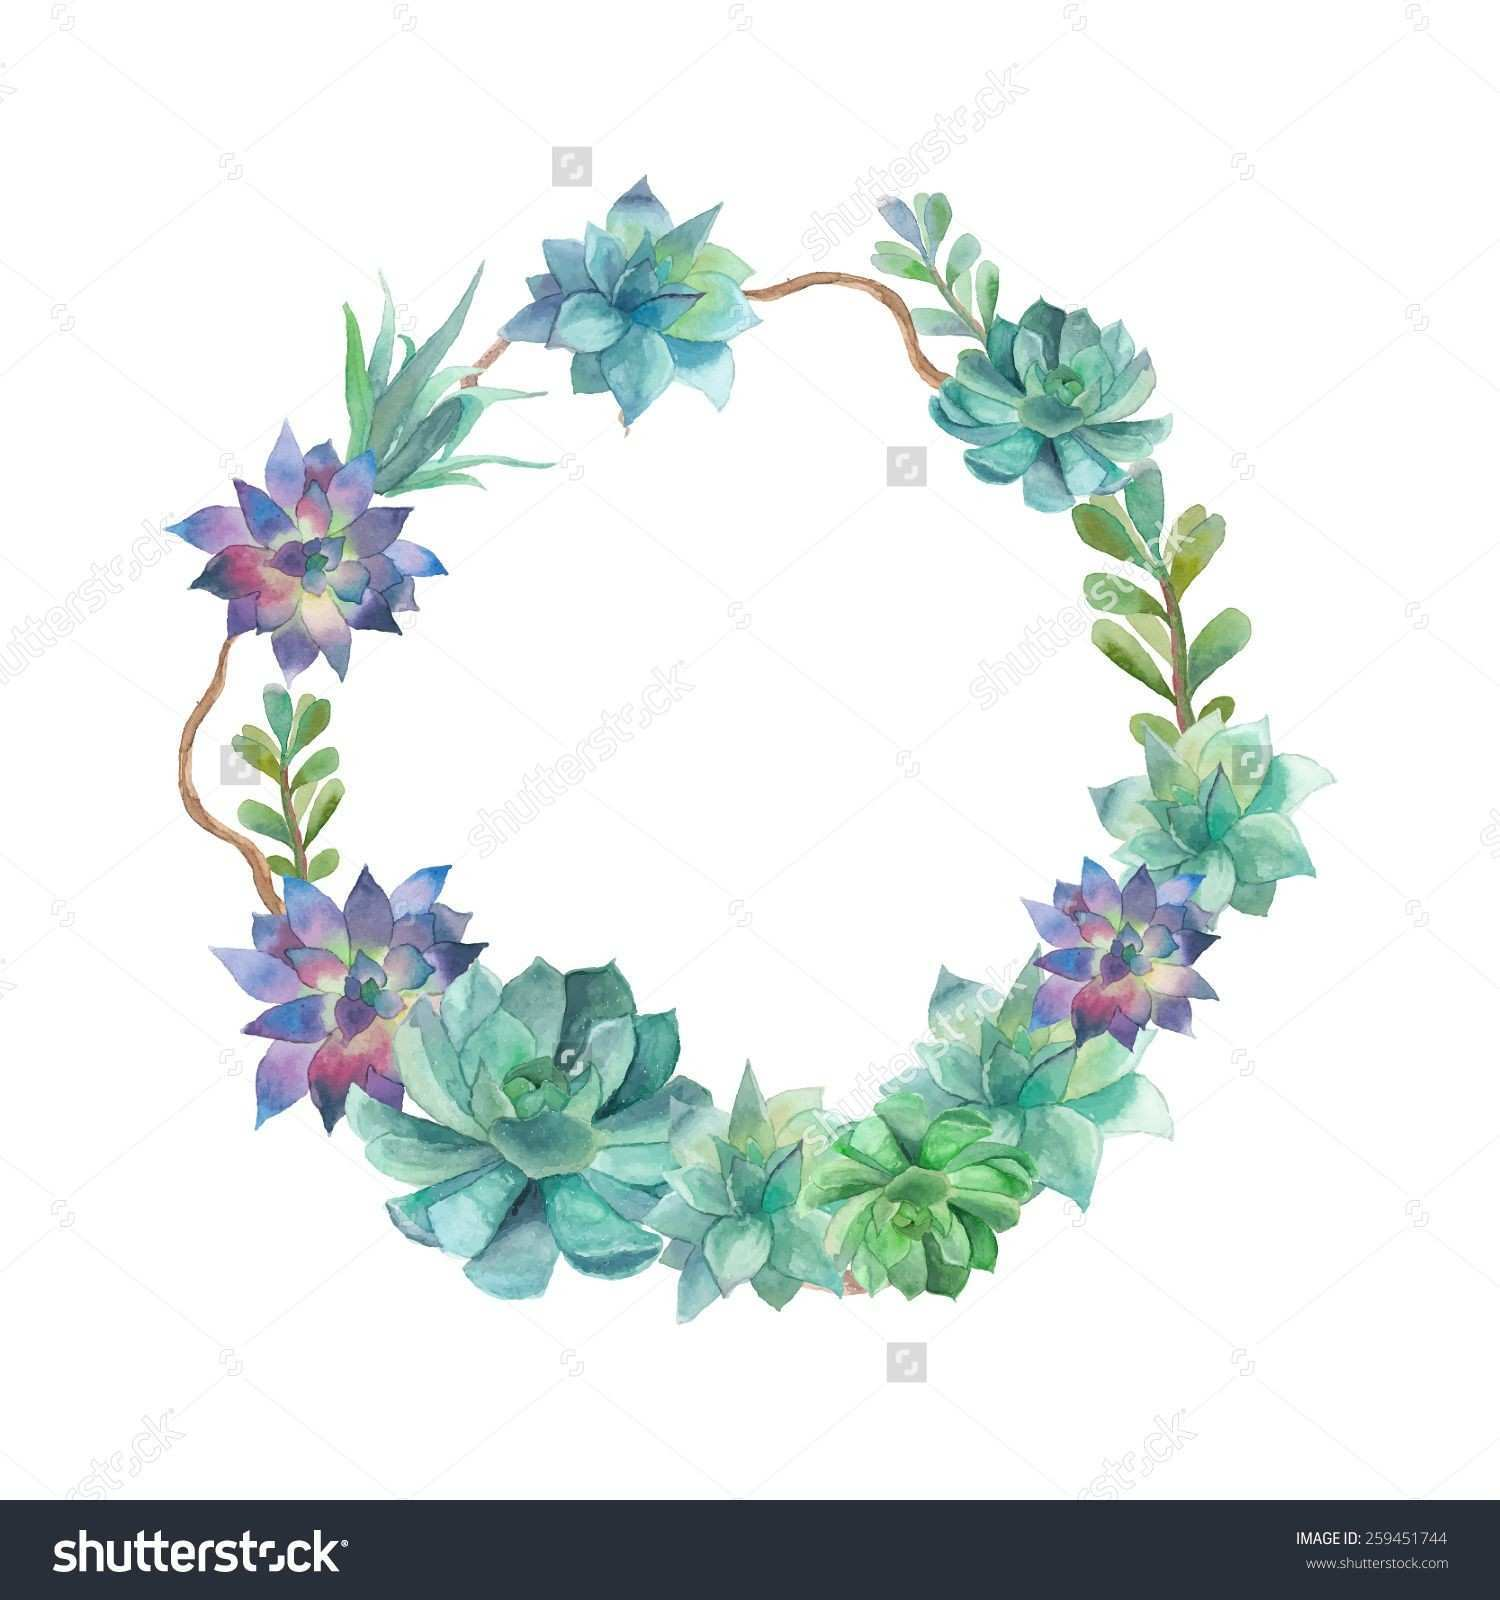 Watercolor succulents wreath Vintage round frame with tree branch